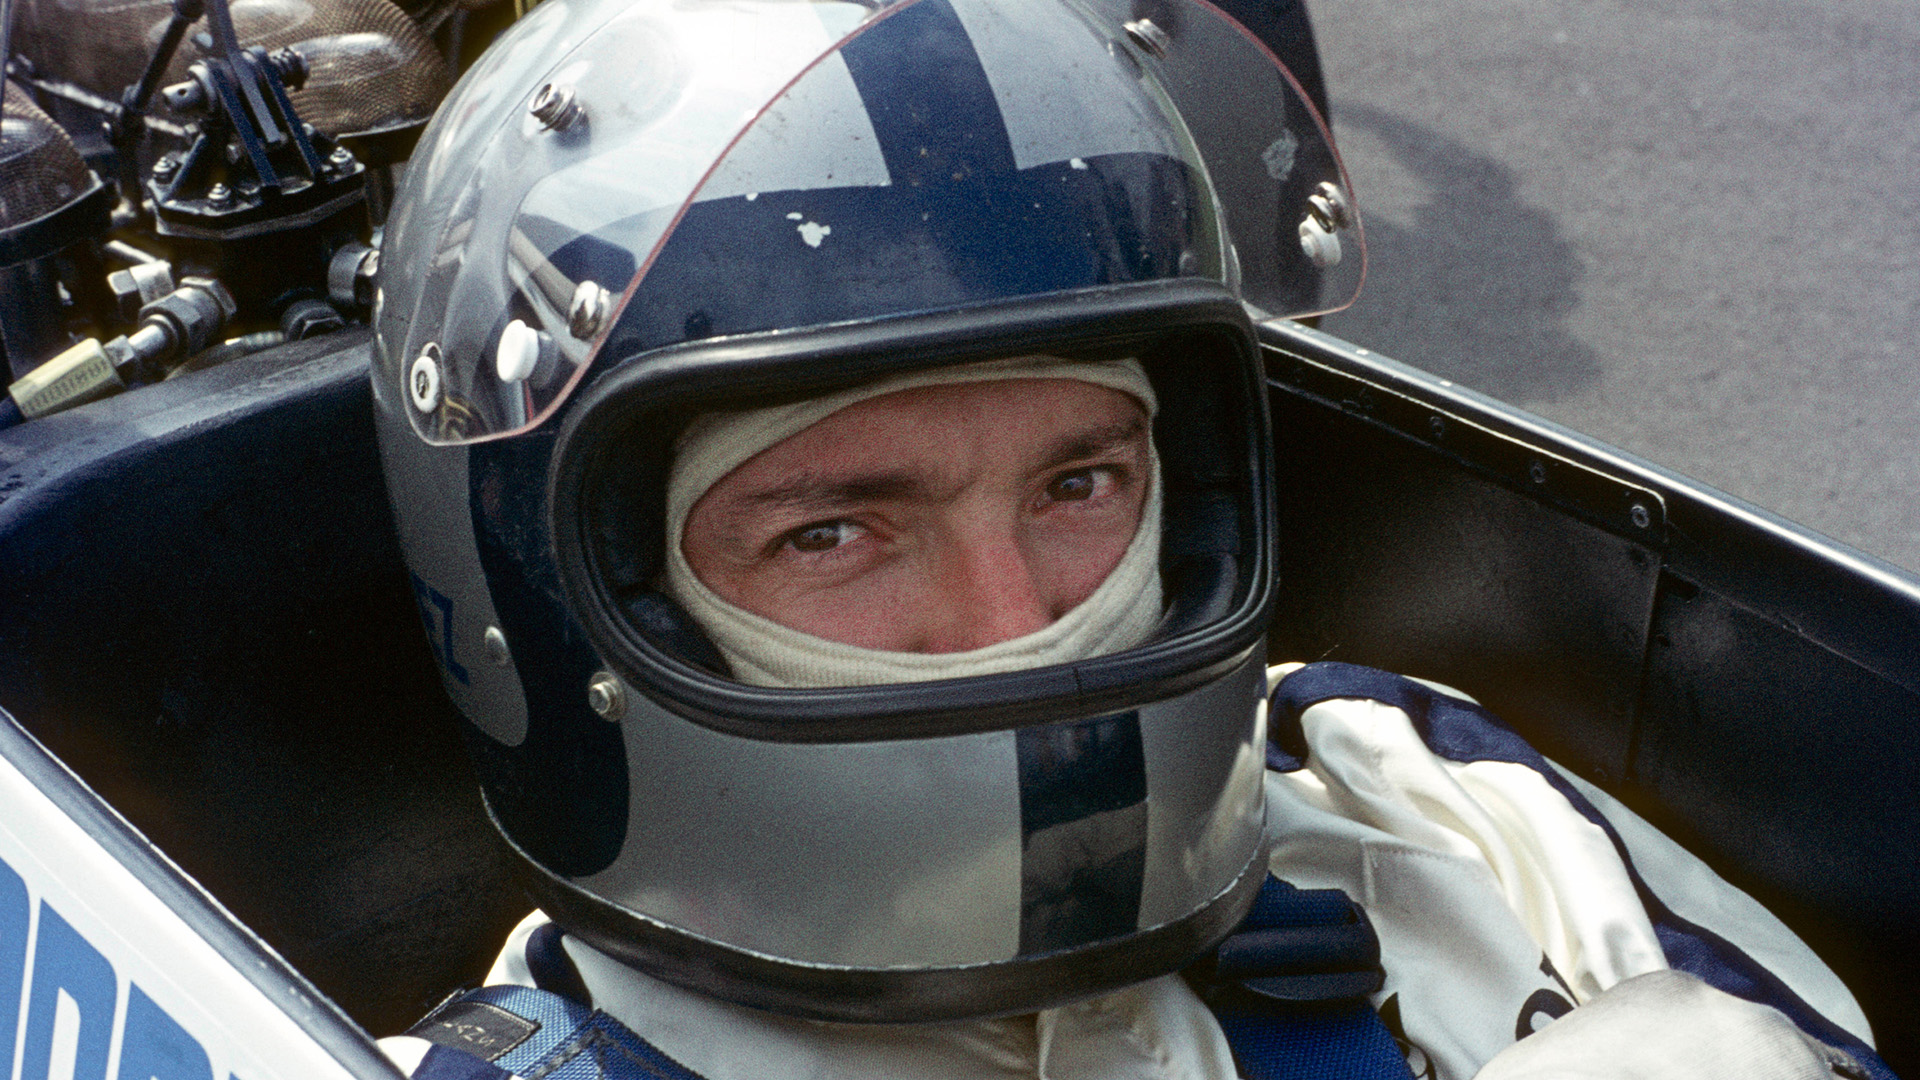 1970 picture of Pedro Rodriguez in his BRM